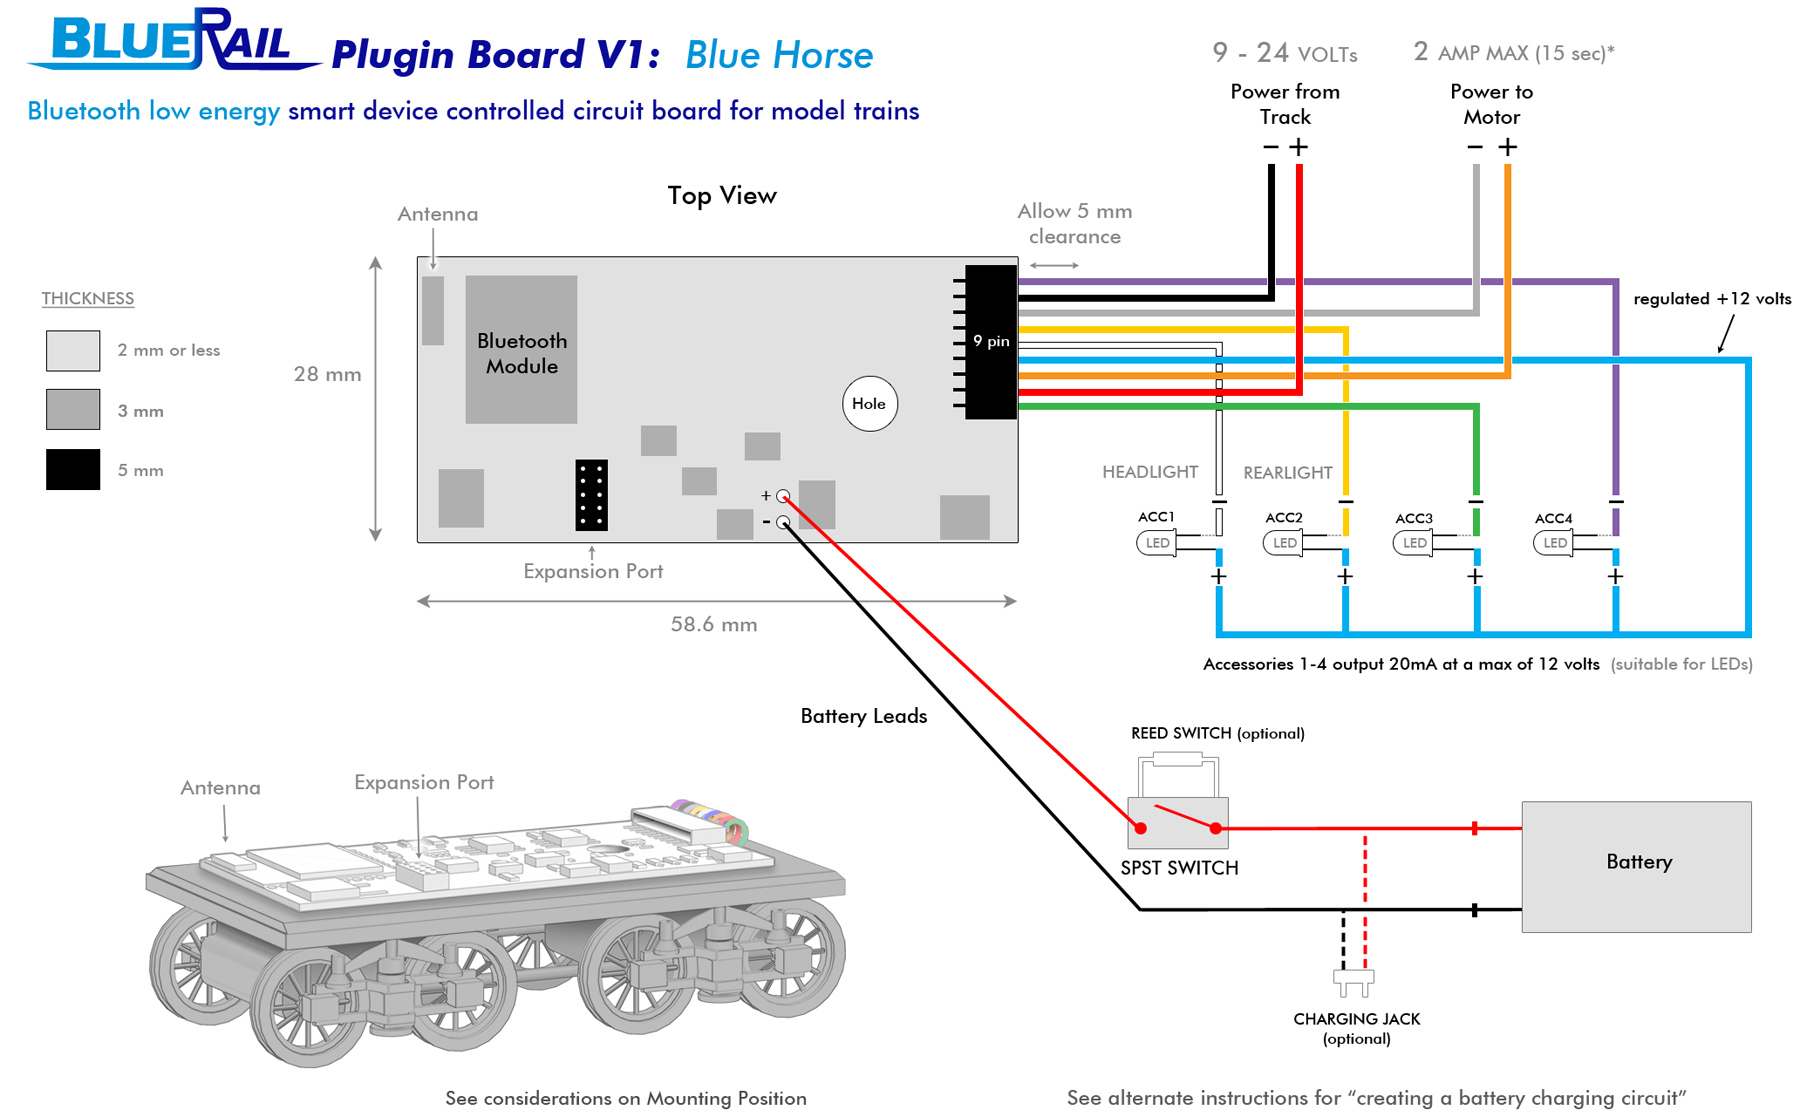 Our First Board Bluerail Trains 2 Amp Wiring Diagram Bluehorse Datasheet Small